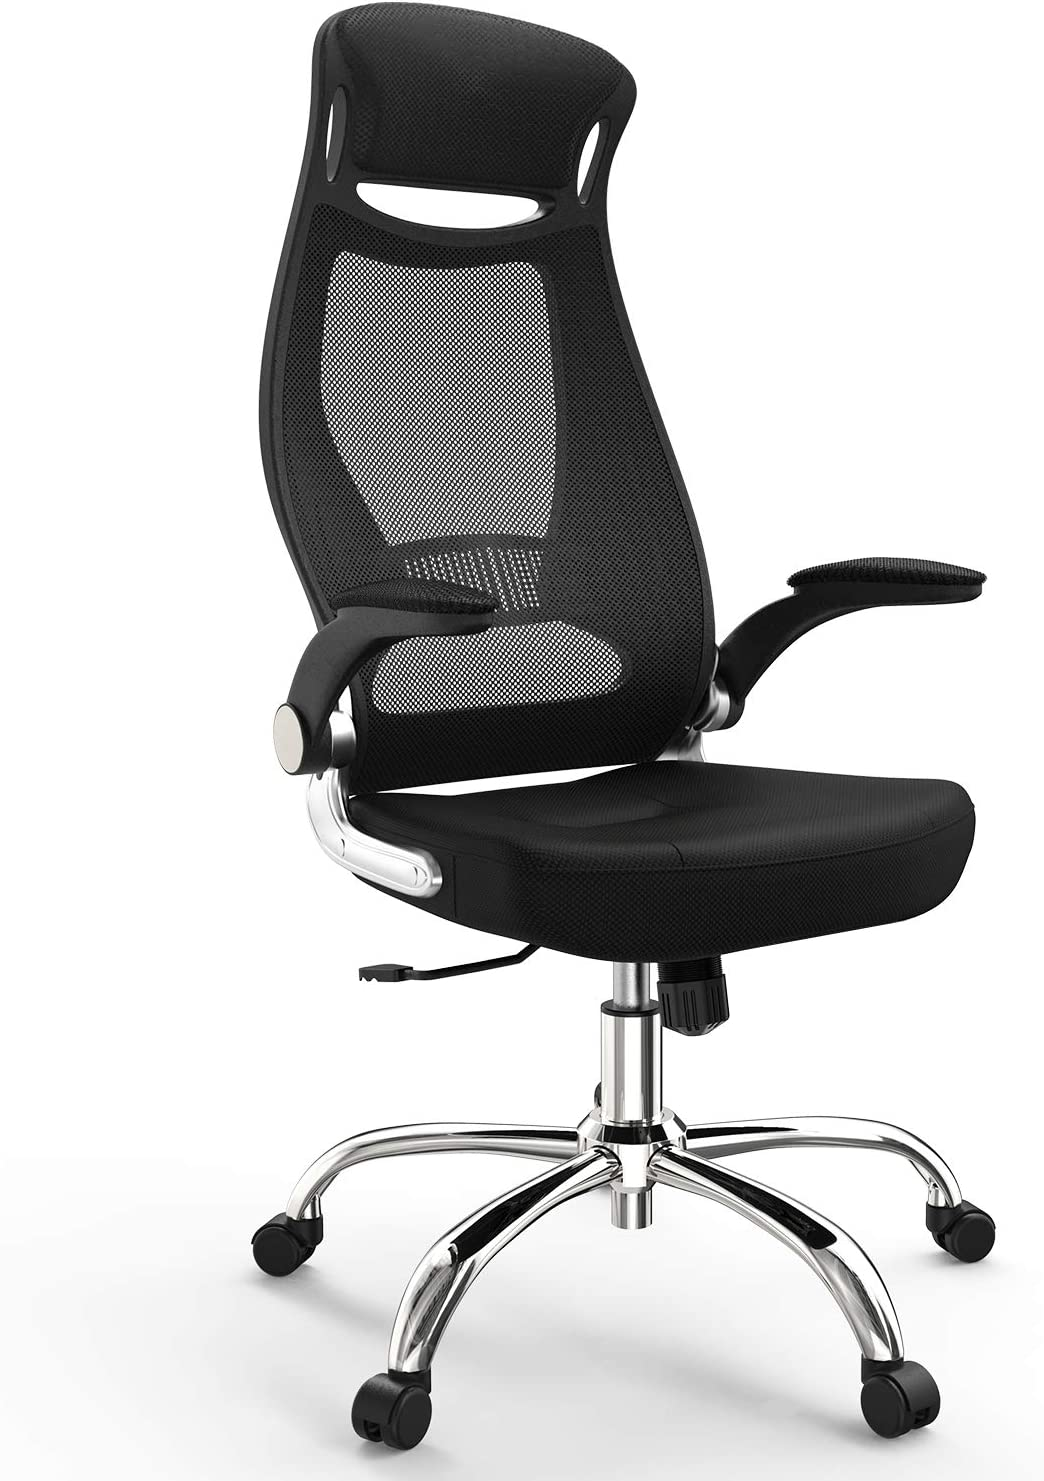 NATRKE High-Back Computer Mesh Office Chair, Swivel Ergonomic Task Chair with Adjustable Armrest, Desk Chair Home Office Chair, Executive Chair with Smooth Casters,Black